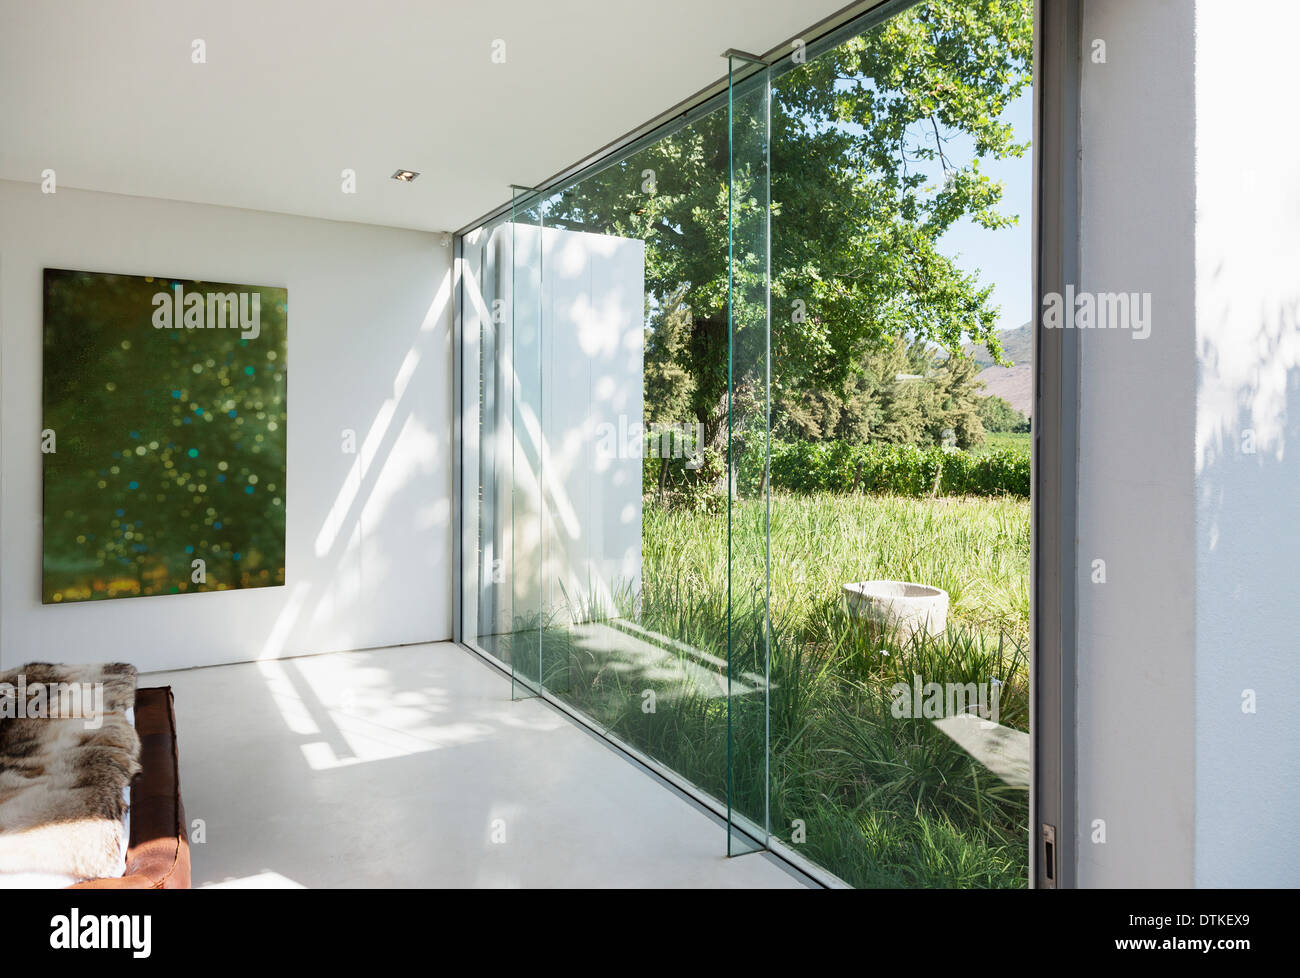 Modern house with glass walls overlooking grass - Stock Image